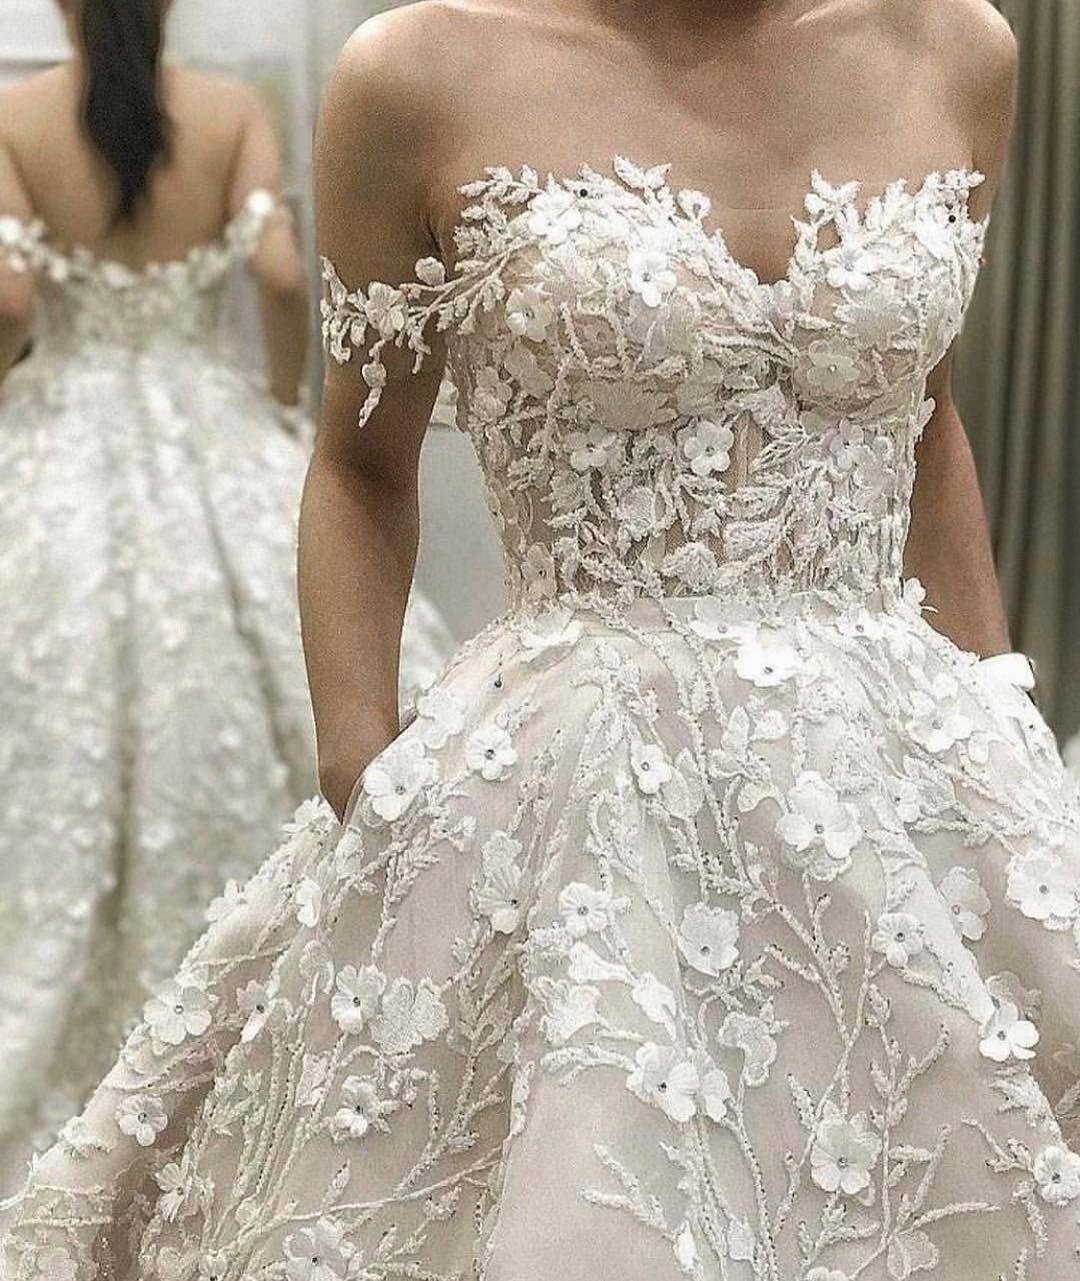 Floral Wedding Dress: Inspired Wedding Dresses Of Couture Bridal Designs In 2019